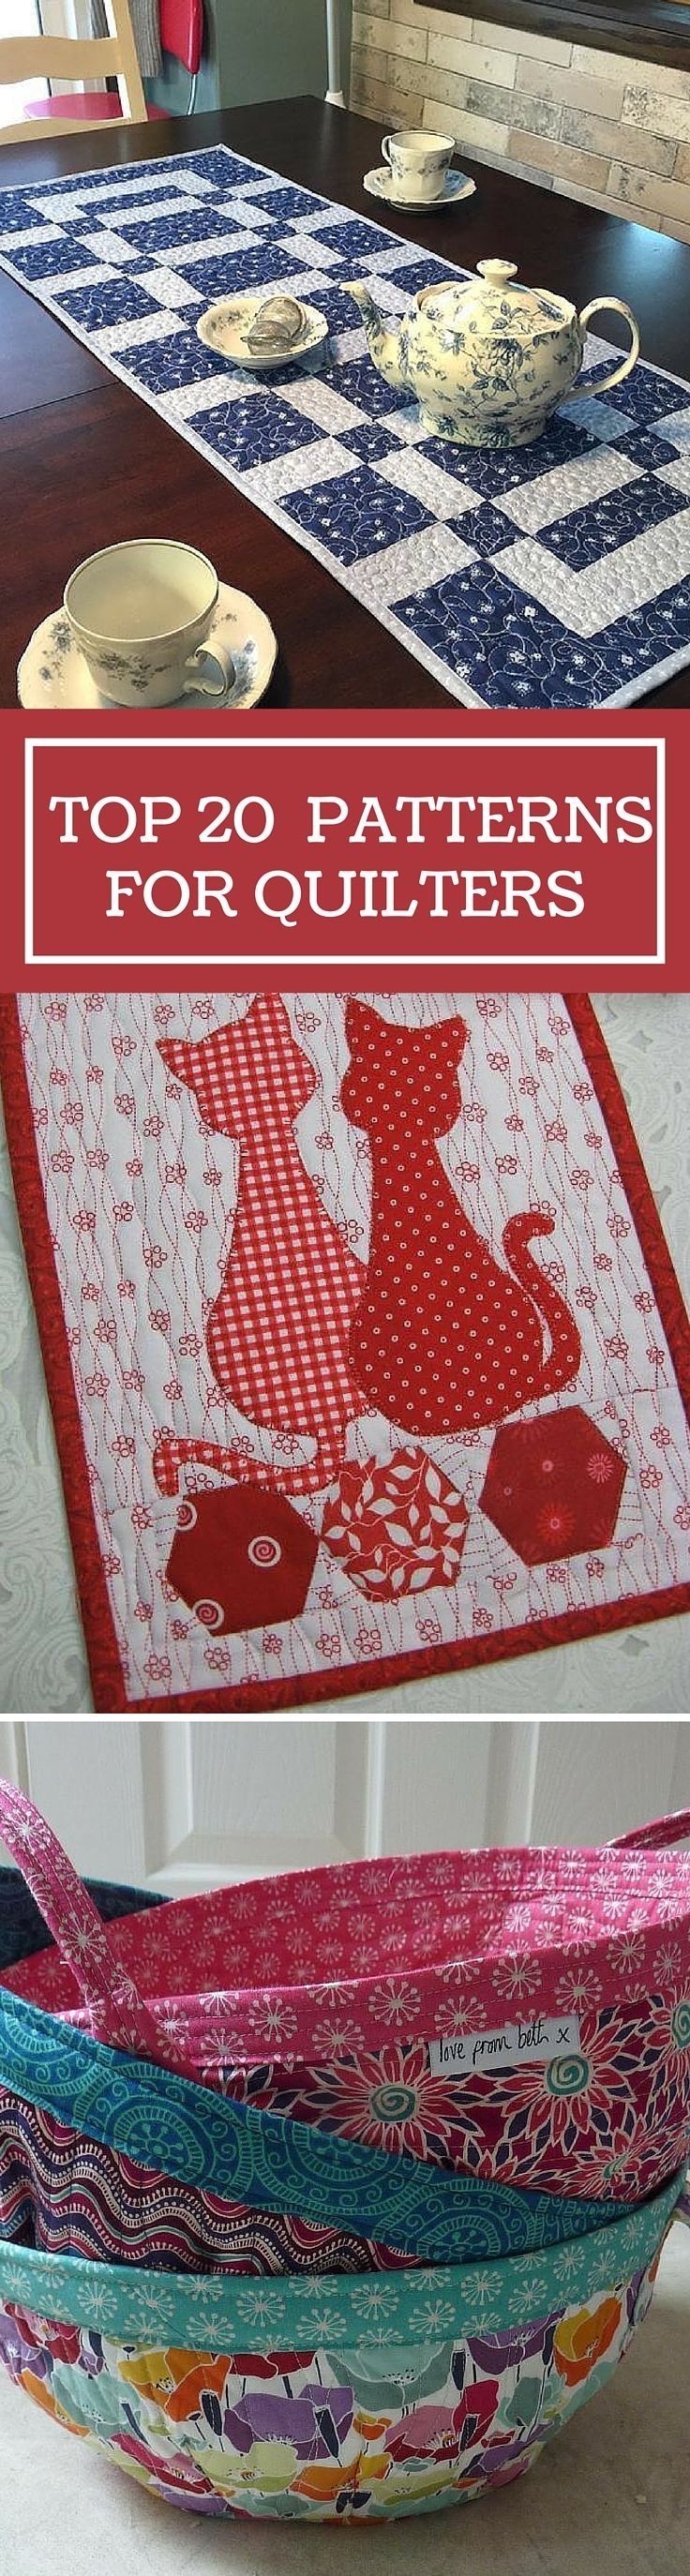 Best 200 Quilting Projects and Paper Piecing images on Pinterest